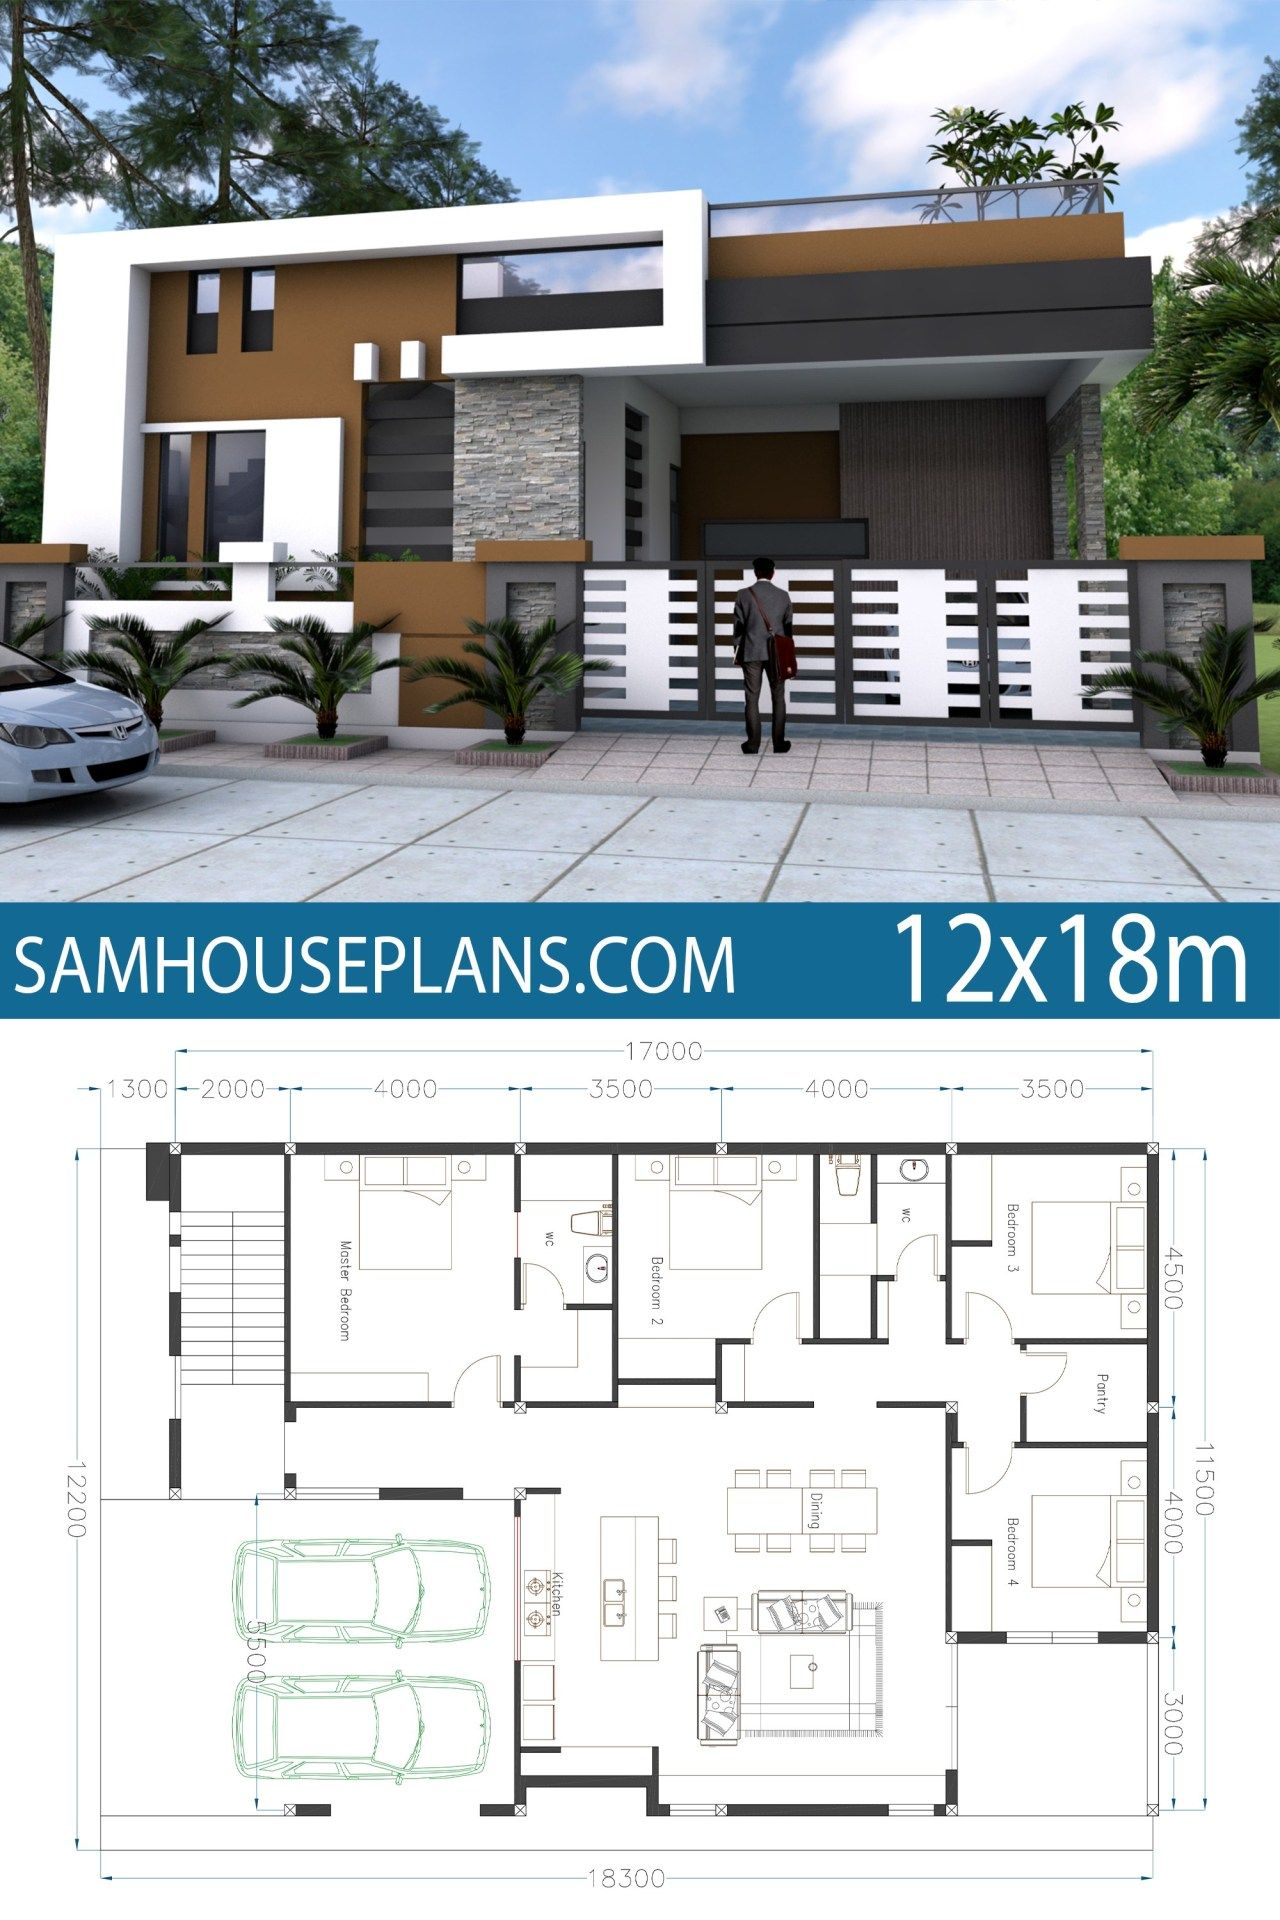 Home Design 40x60f With 4 Bedrooms Sam House Plans Model House Plan House Front Design Architectural Design House Plans